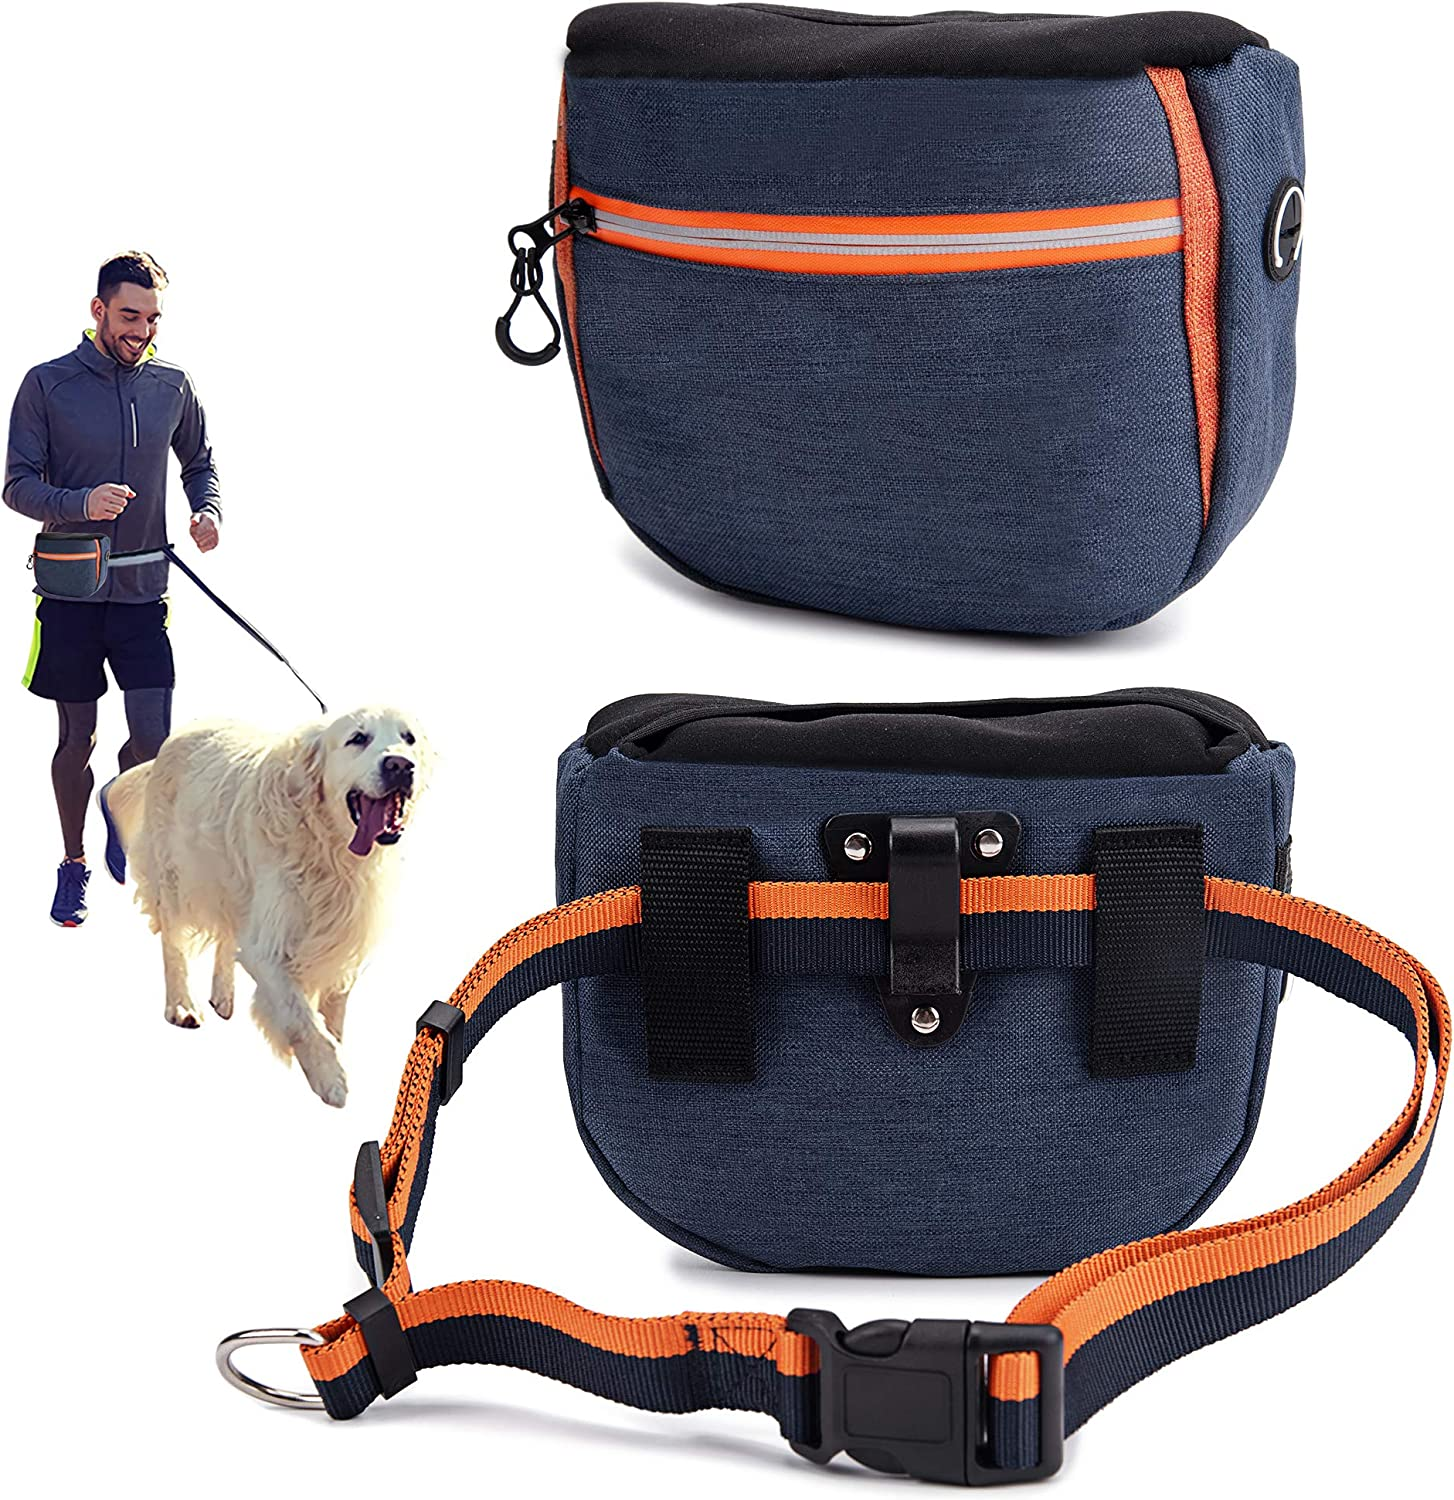 risdoada Dog Treat Pouch for Training, 4 Ways to Wear Auto Closing Portable Dogs Walking Bag with Adjustable Belt, Oxford Cloth Pet Food Container with Poop Bags Dispenser